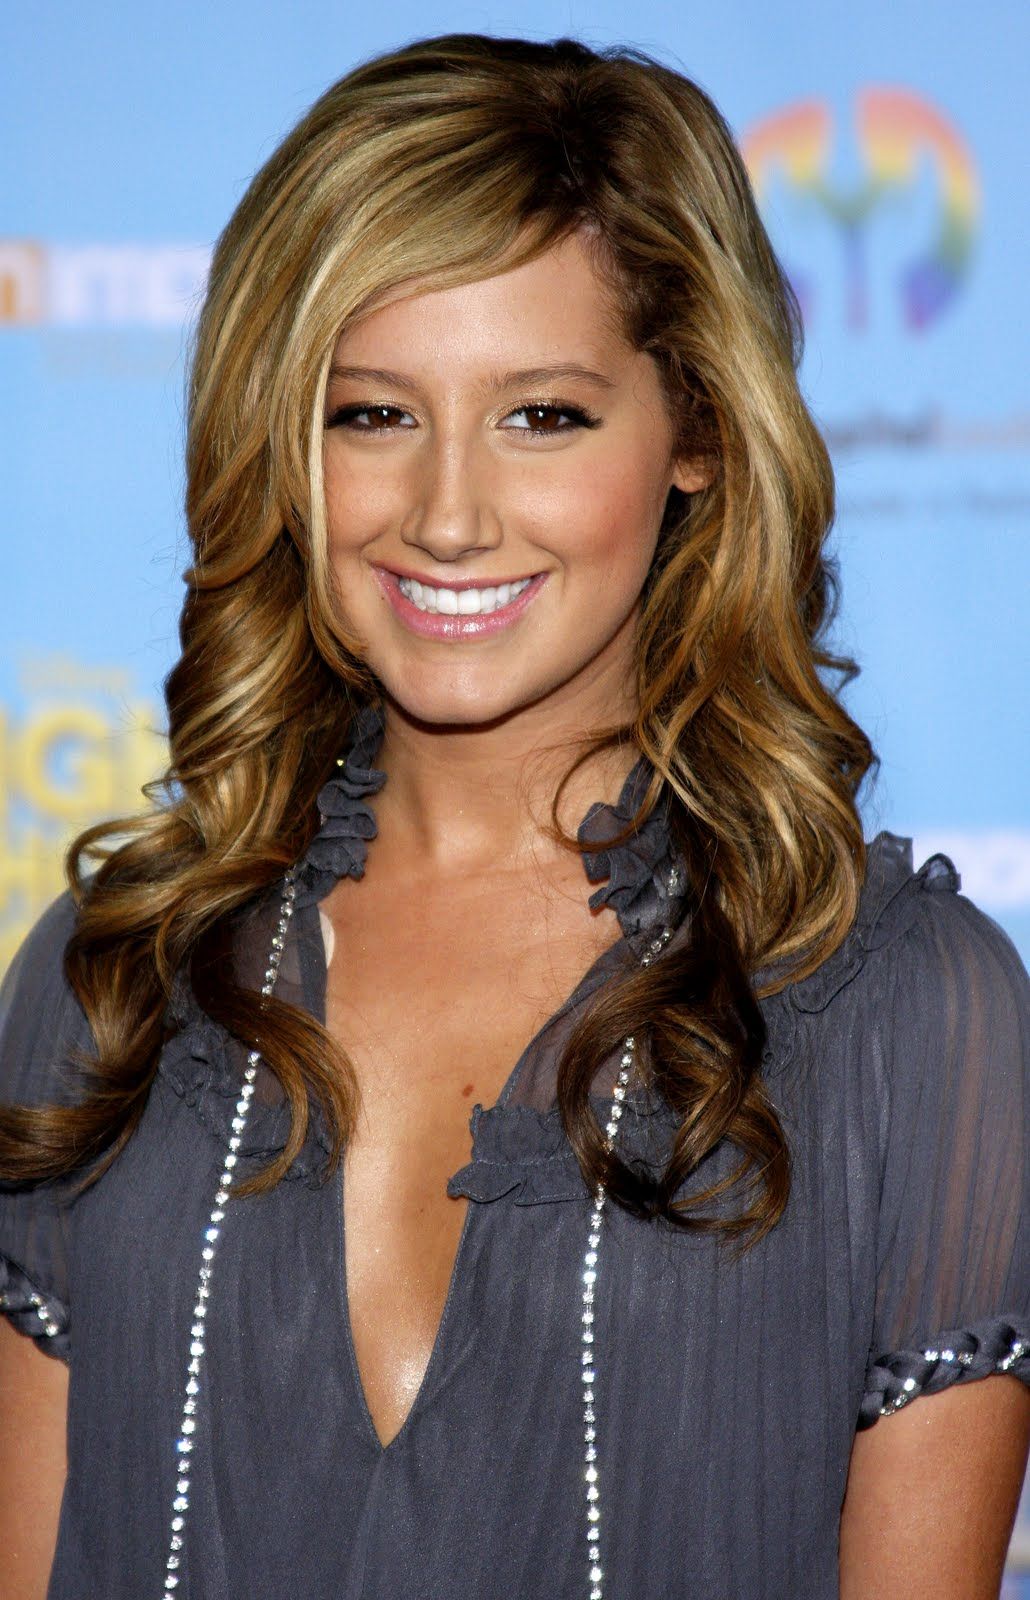 Ashley-Tisdale-Ashleytisdale-hairstyles-pictures-videos-movies-actress-pics_(17).jpg